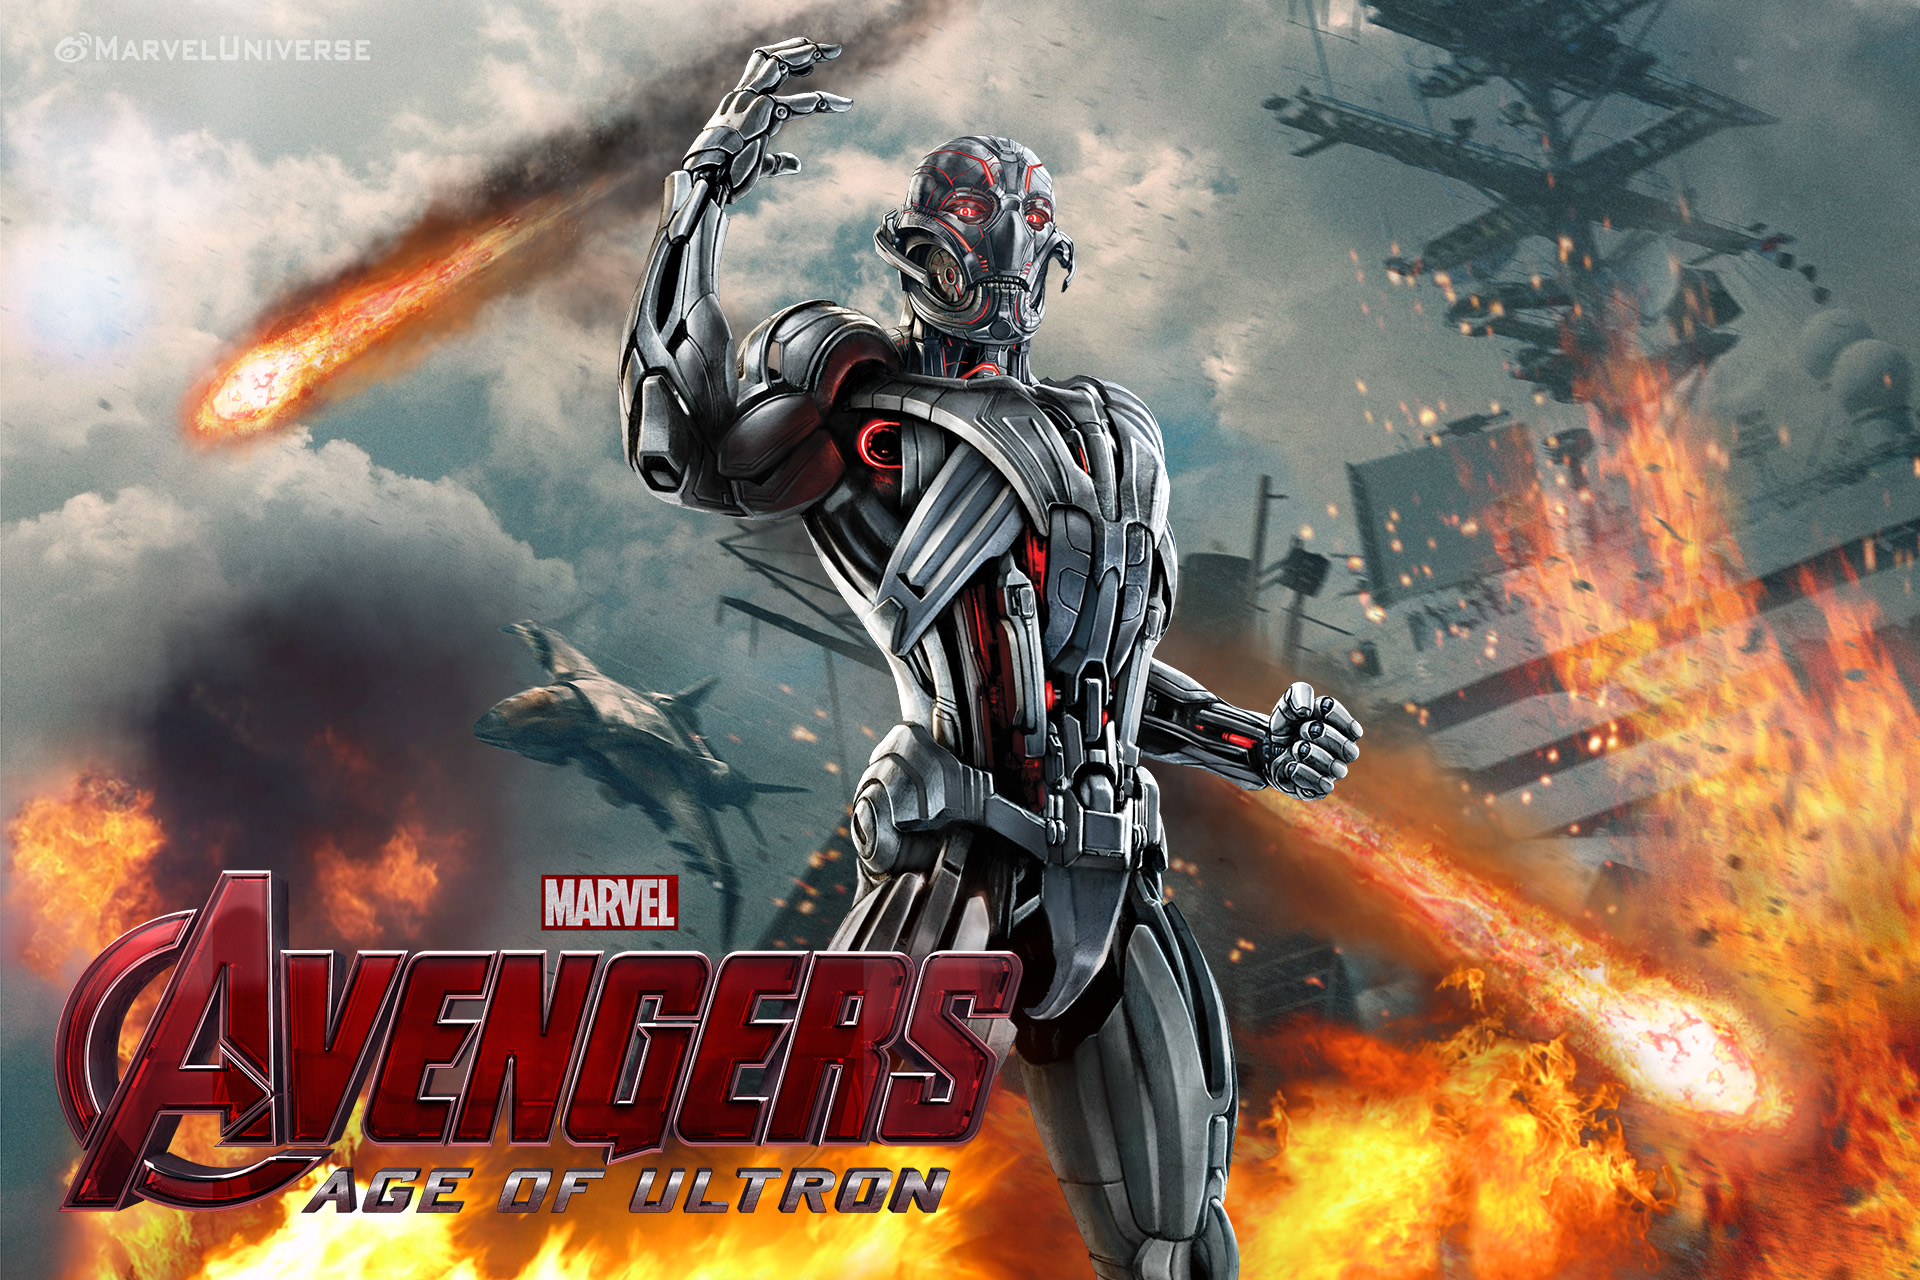 Avengers Age Of Ultron By Iloegbunam On Deviantart: Ultron By Chenshijie9095 On